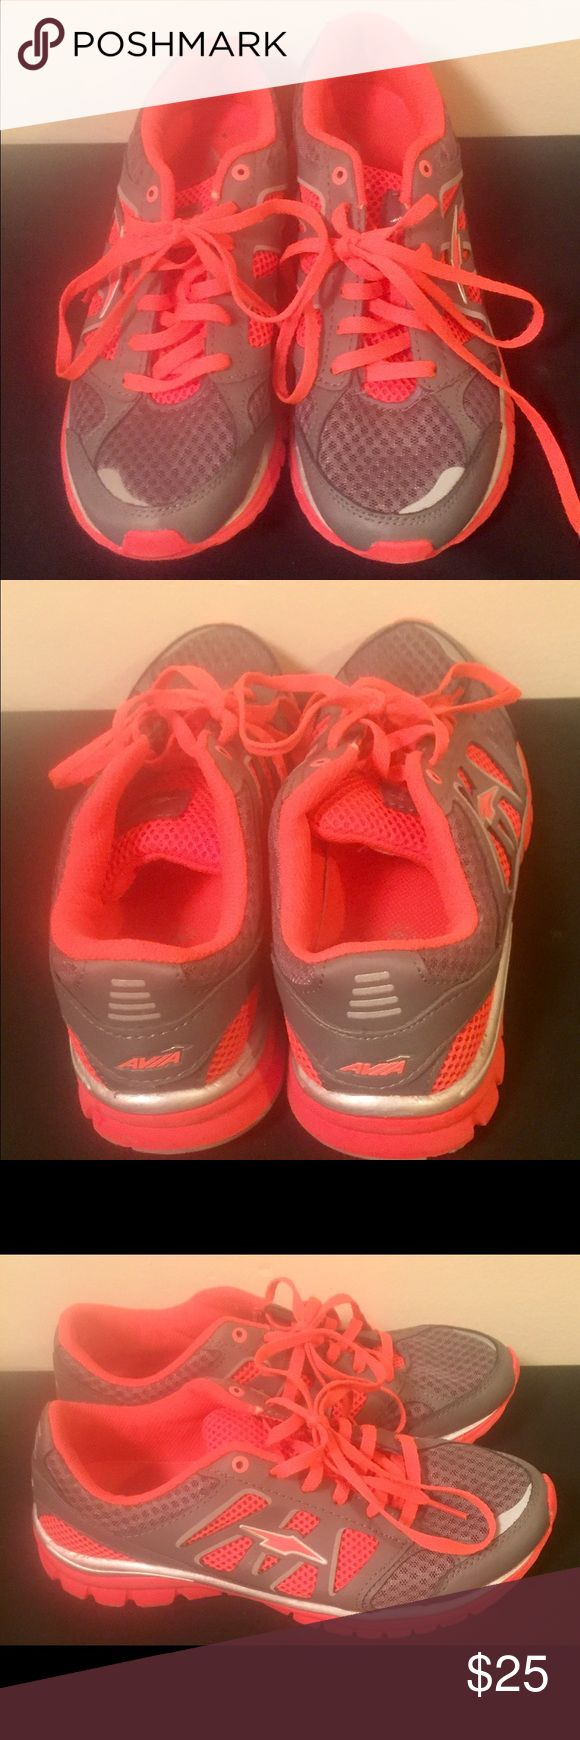 Ladies Size 9 Pink and Gray Avia Running Shoes. Like new worn a few times. Pink/Gray with Pink laces. Leather and man Made upper balance. Bottoms in excellent condition. Avia Shoes Sneakers